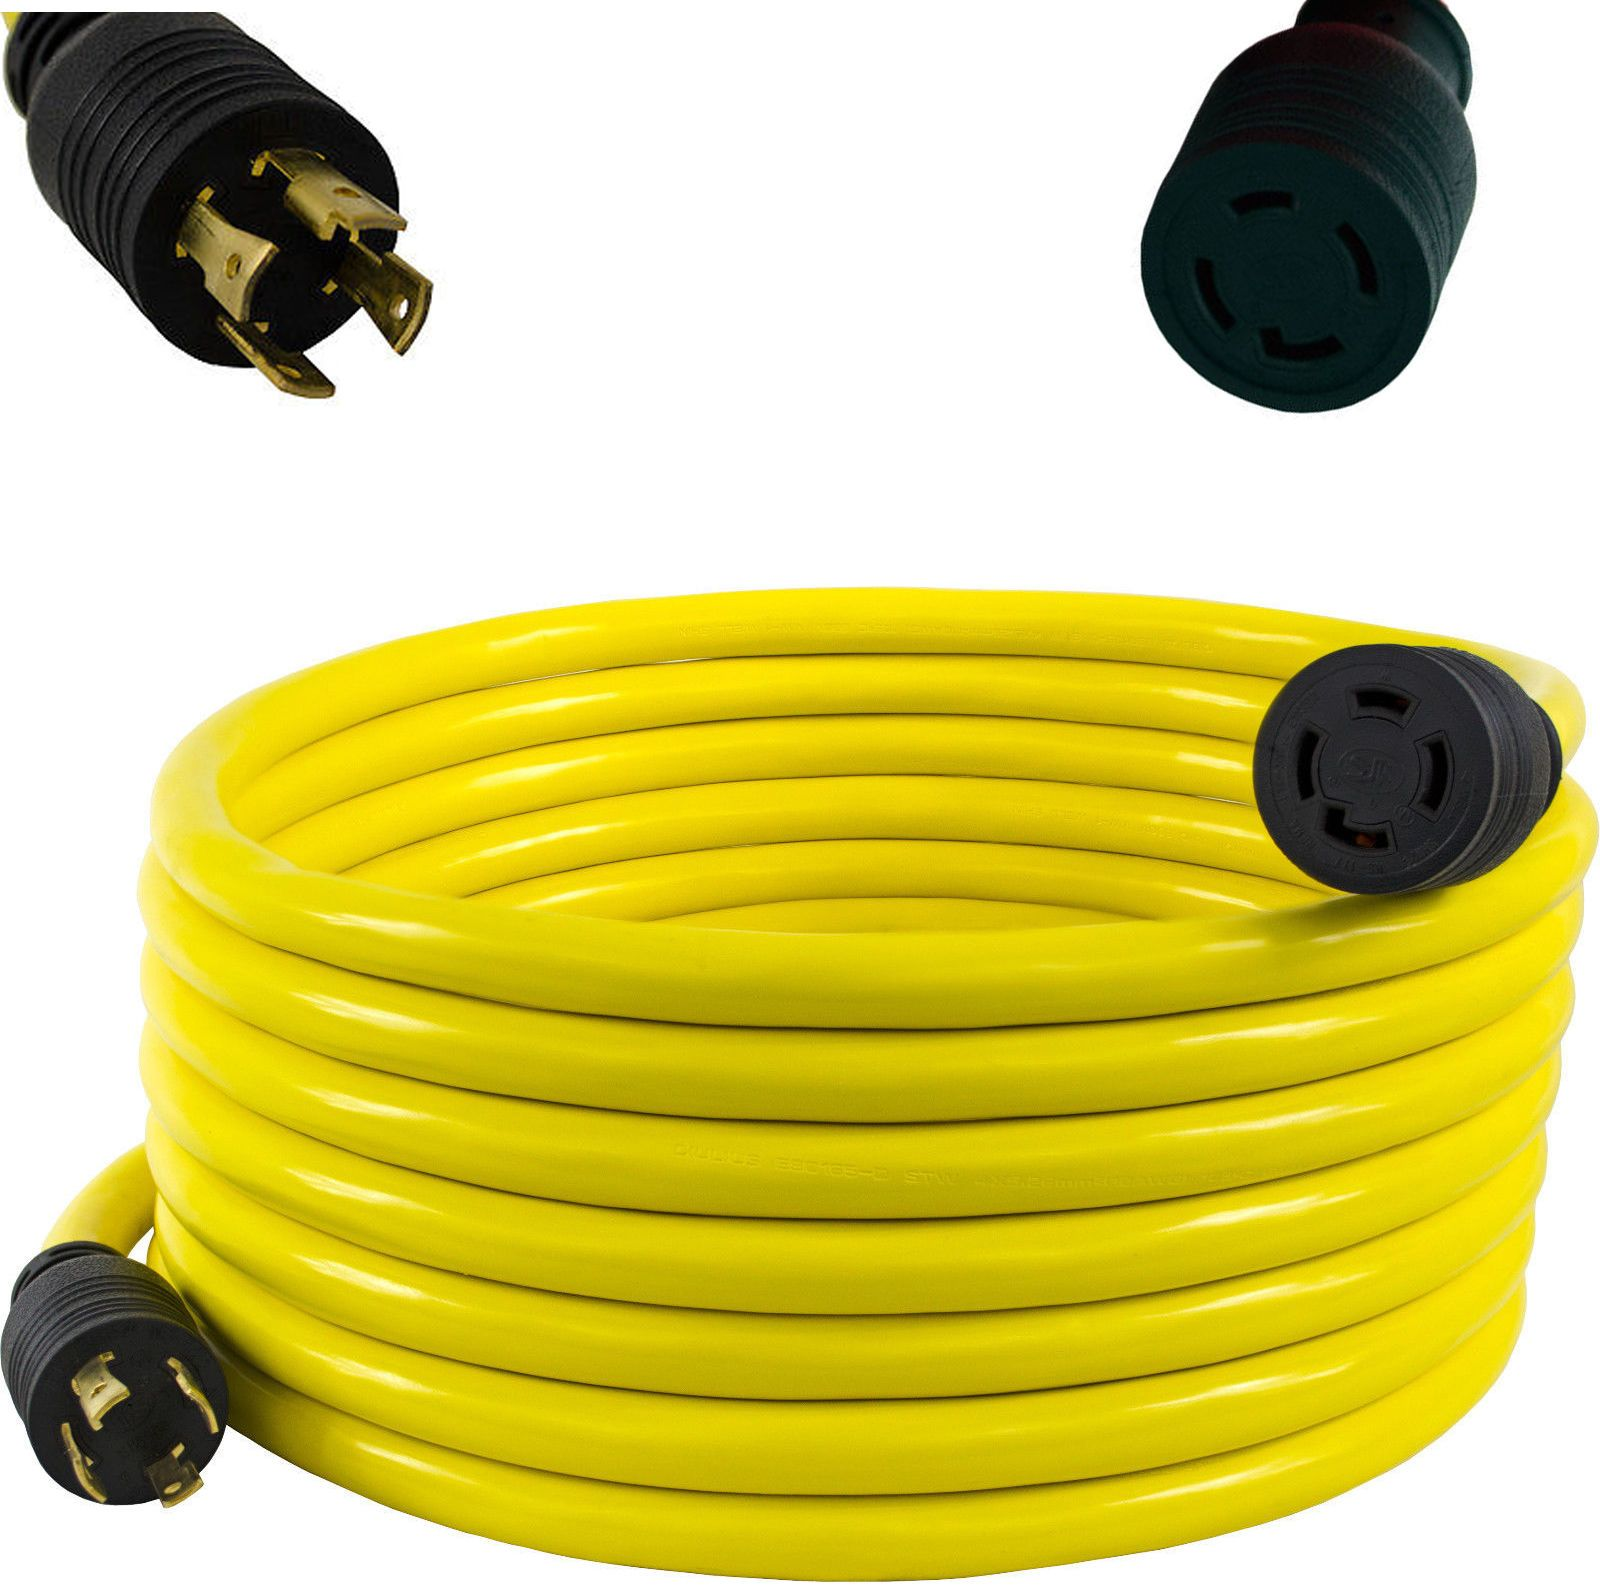 30 Amp 4 Wire Generator Cord | 30 Amp 40 Ft Nema L14 30 4 Wire 10 Gauge 125 250v Generator Power